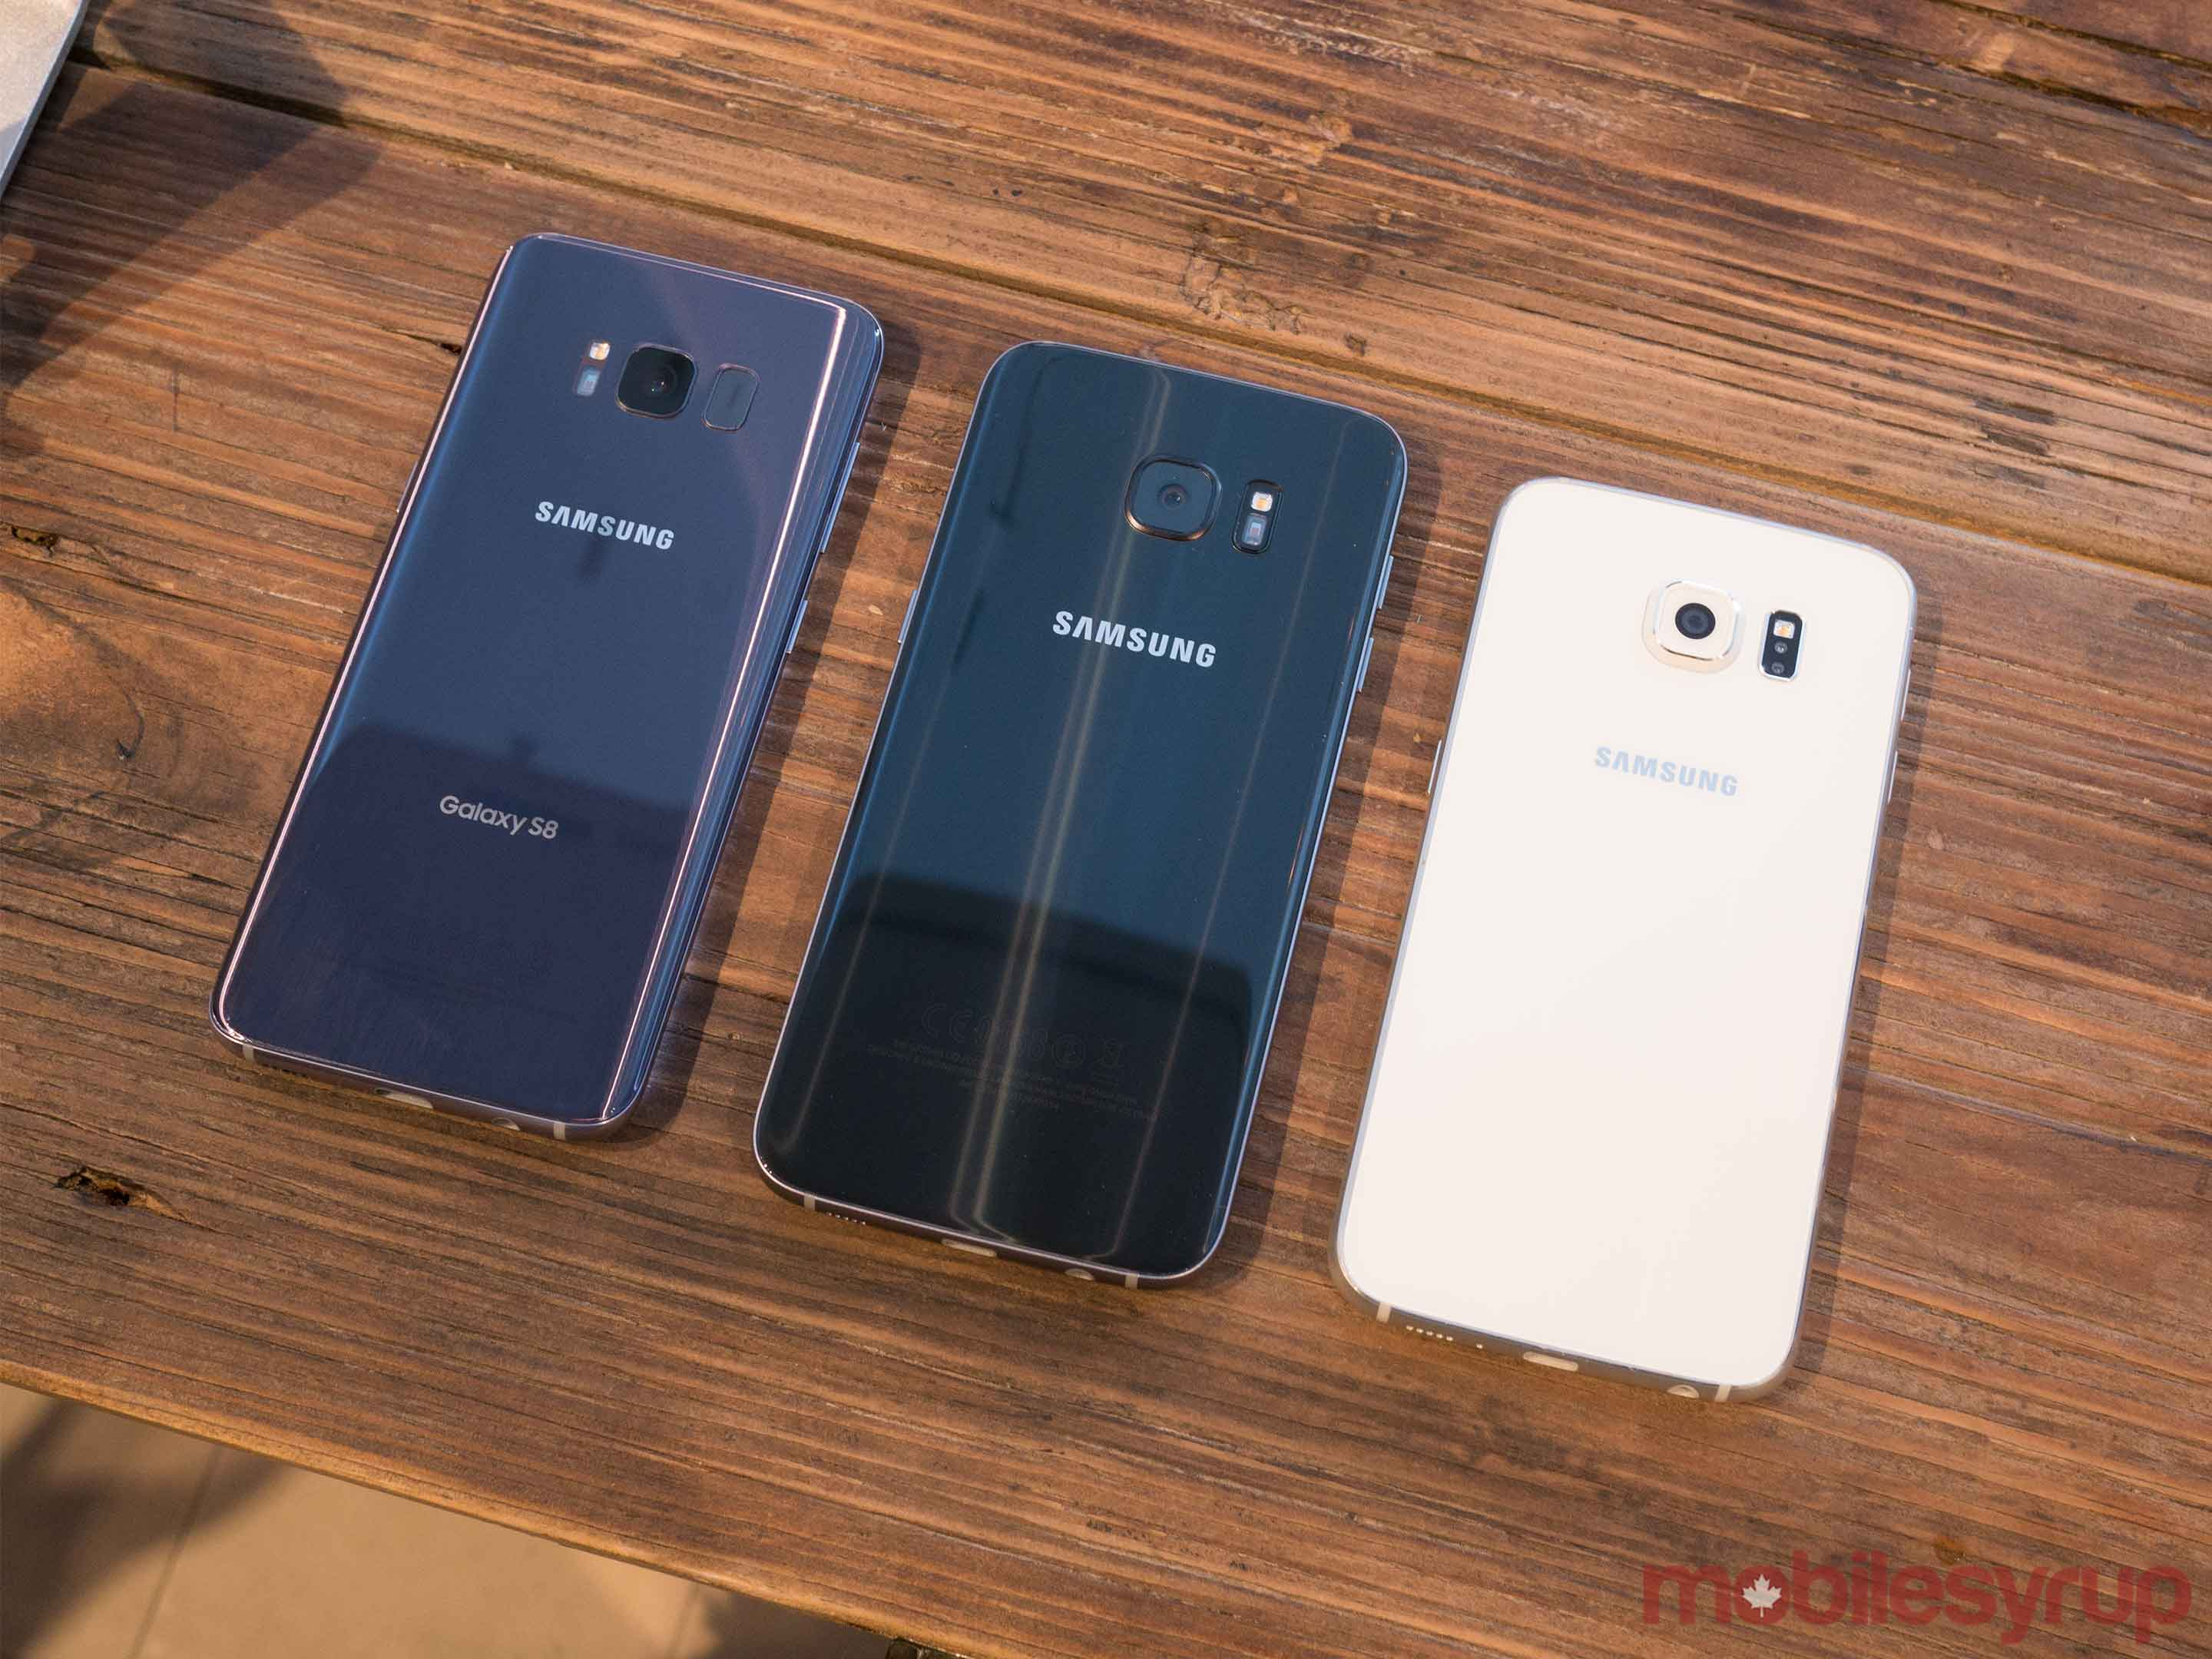 Galaxy S8 next Galaxy S7 and Galaxy S6